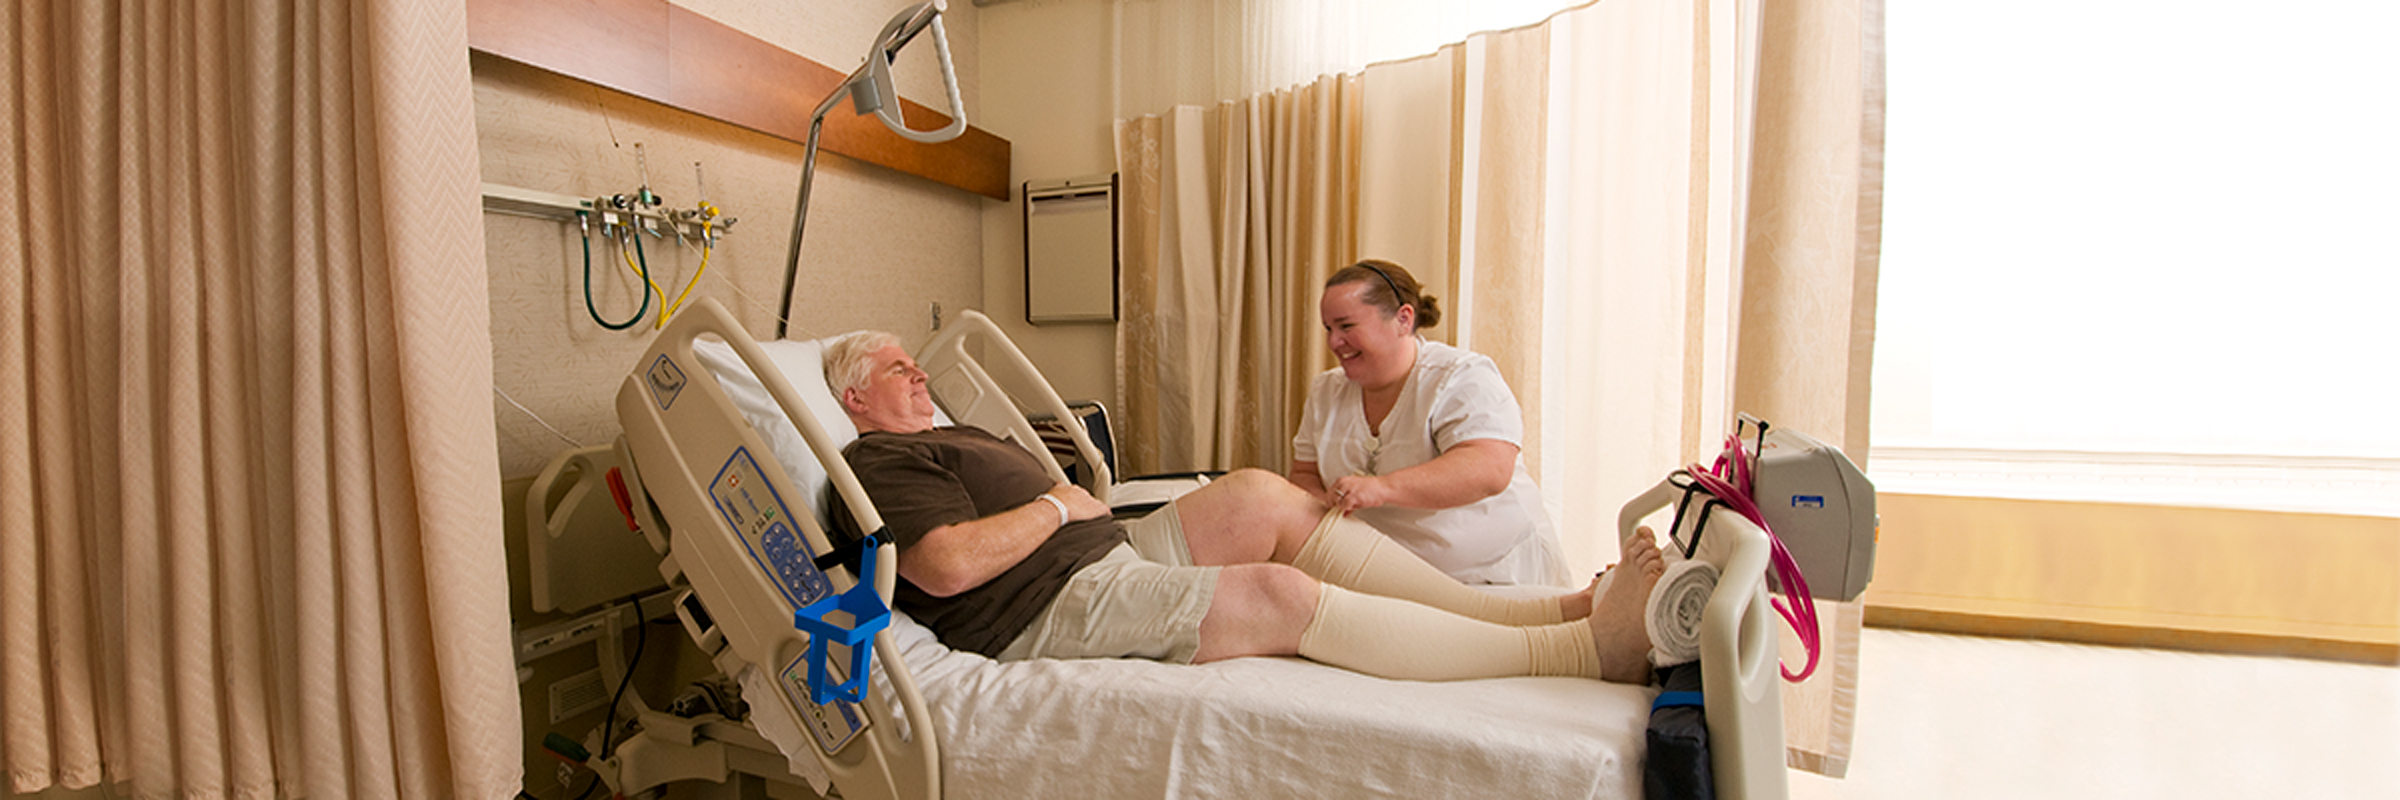 Joint-Replacement-Rehab-2400W-WEB